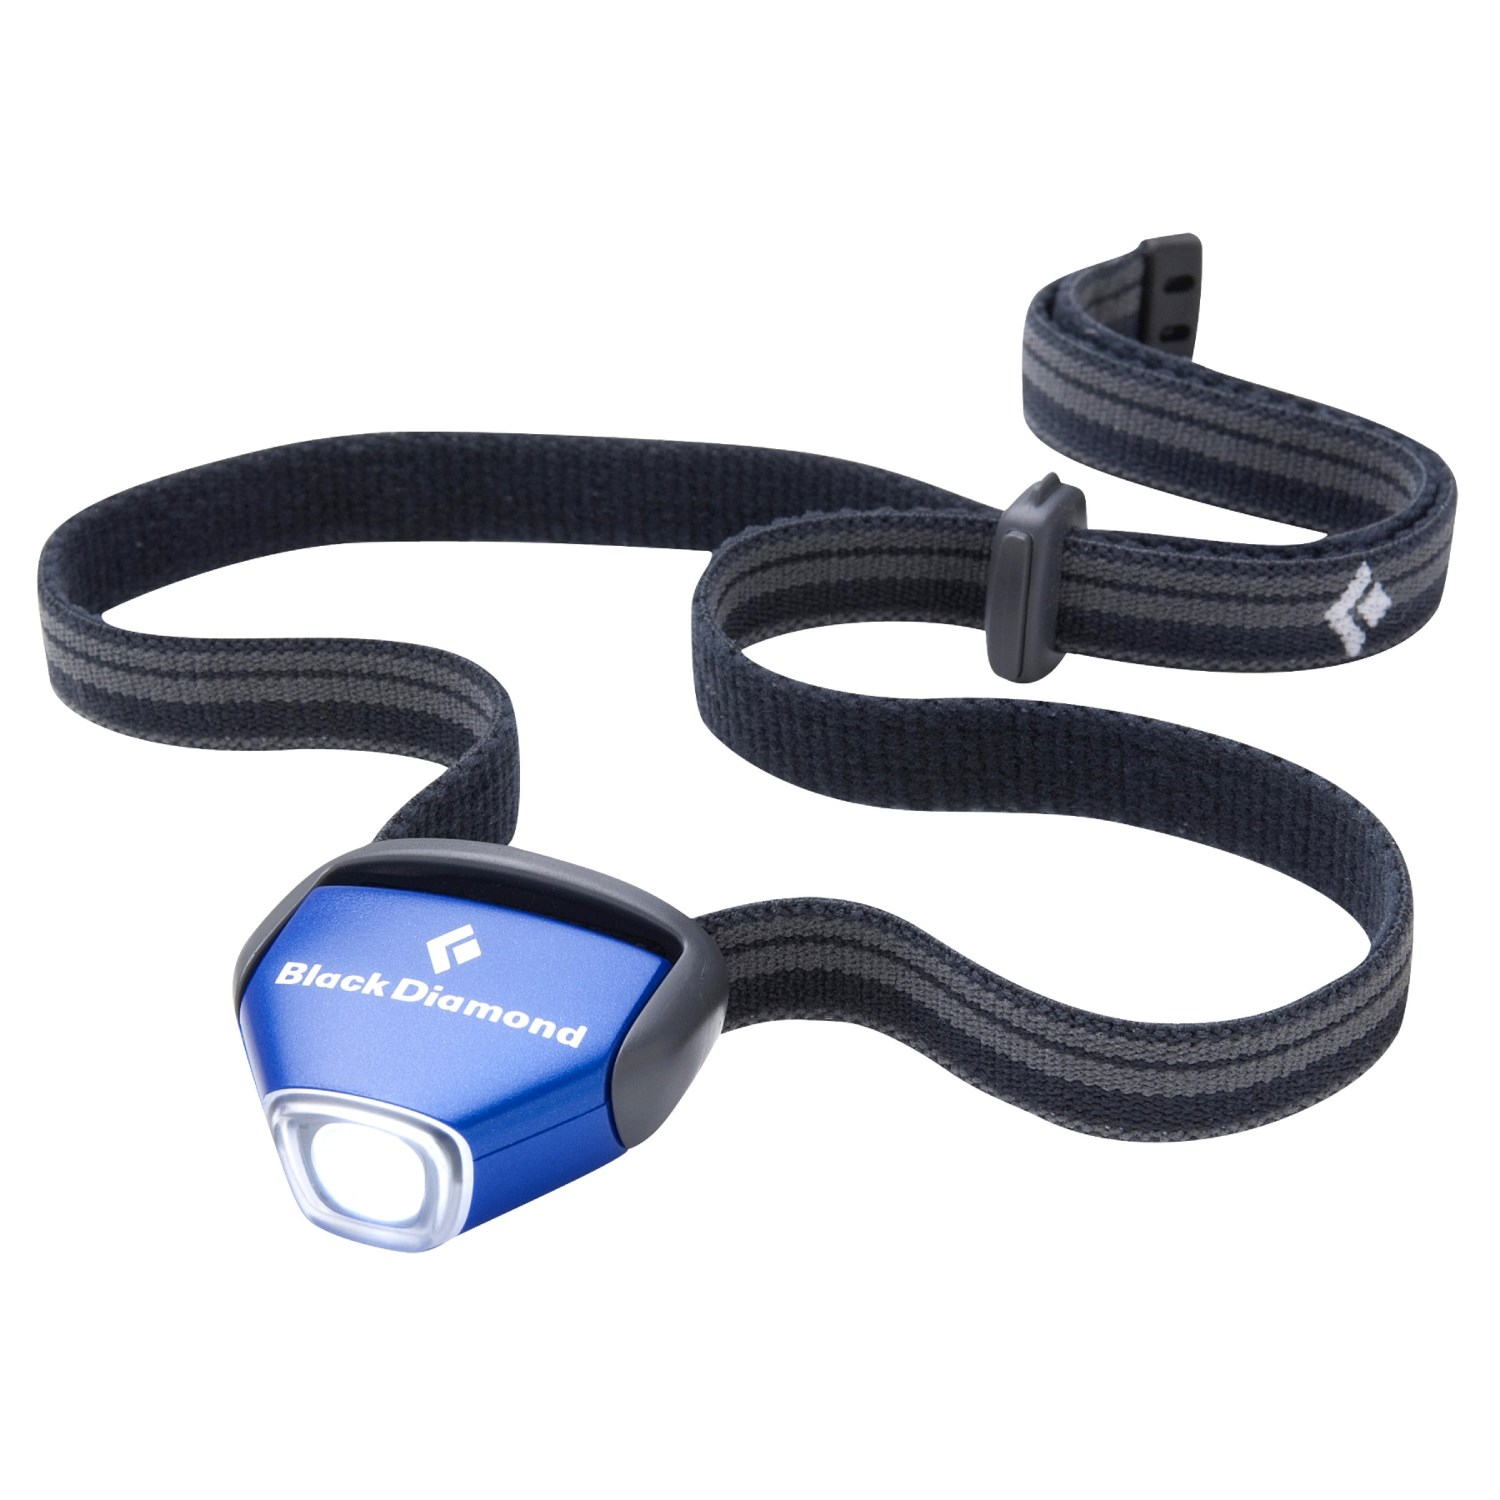 black diamond headlamp strap instructions